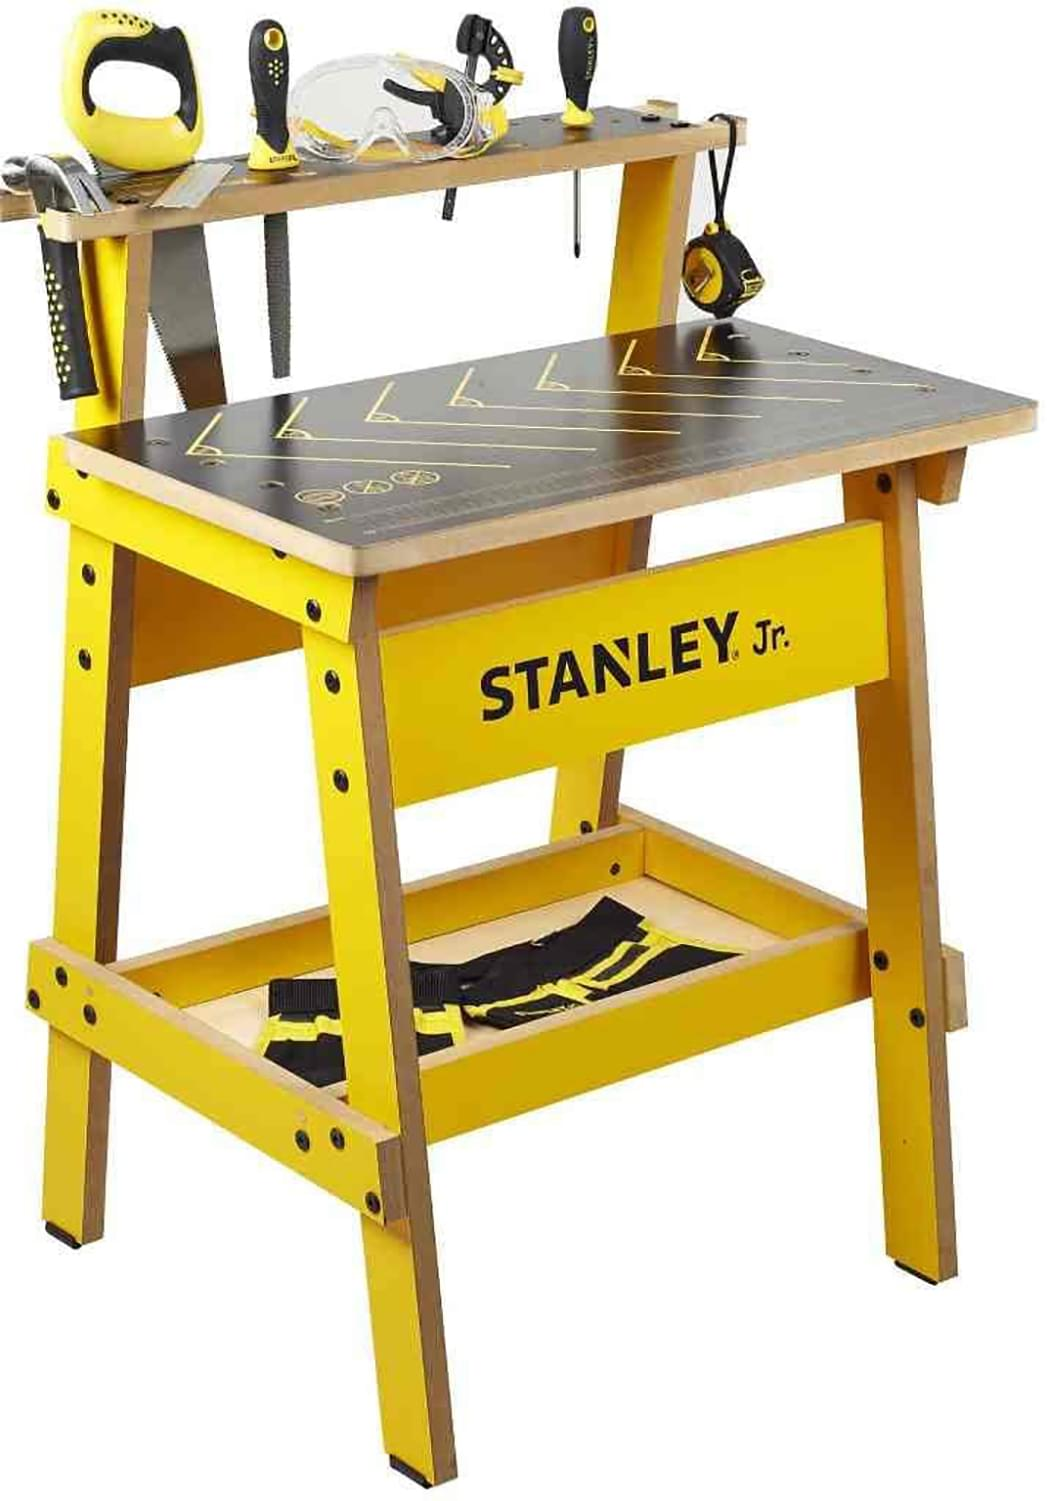 Stanley Jr. Wood Work Bench | Real Tools for Kids